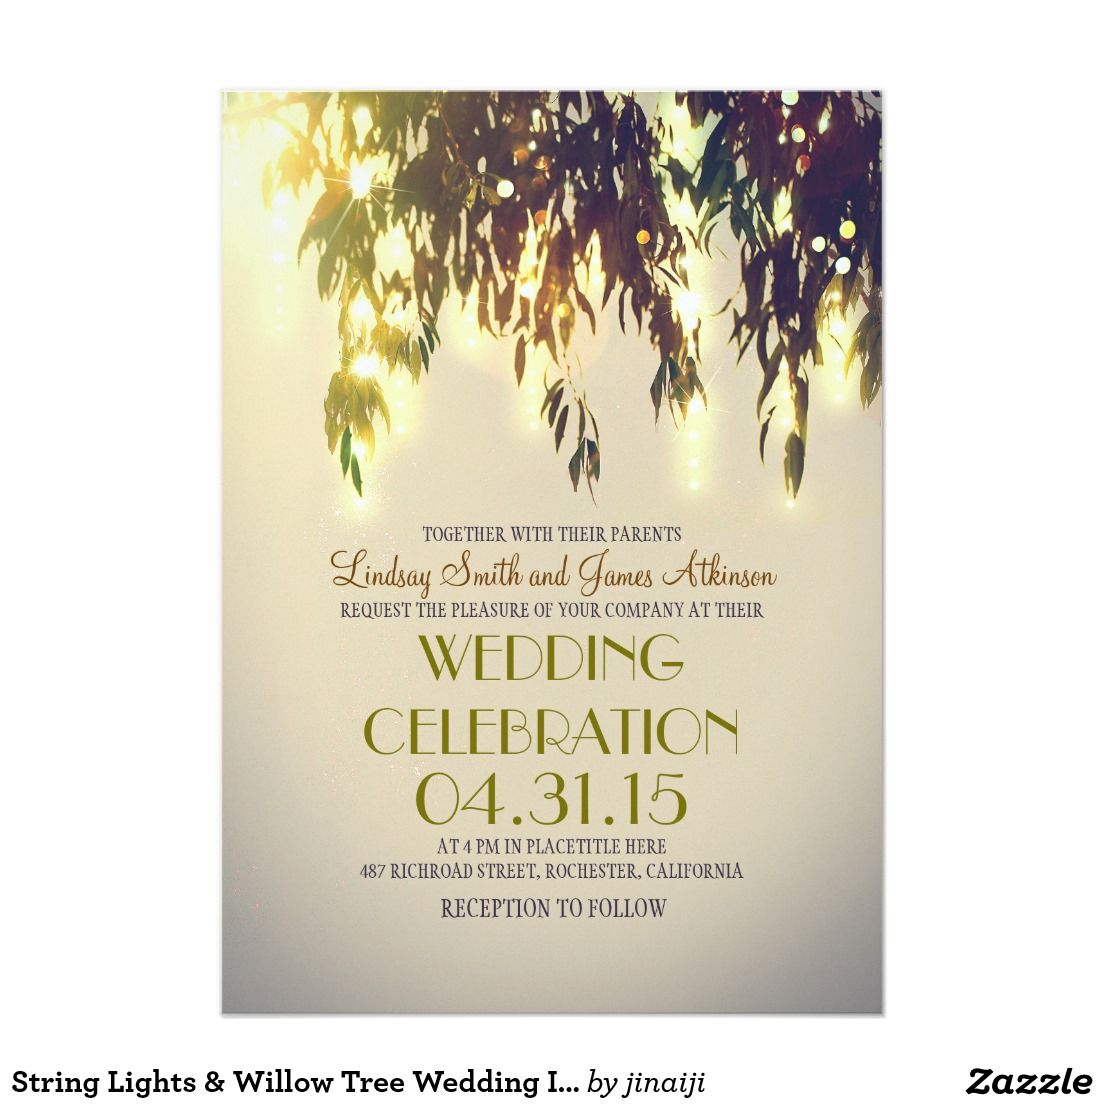 String Lights & Willow Tree Wedding Invitations | Briana wedding ...